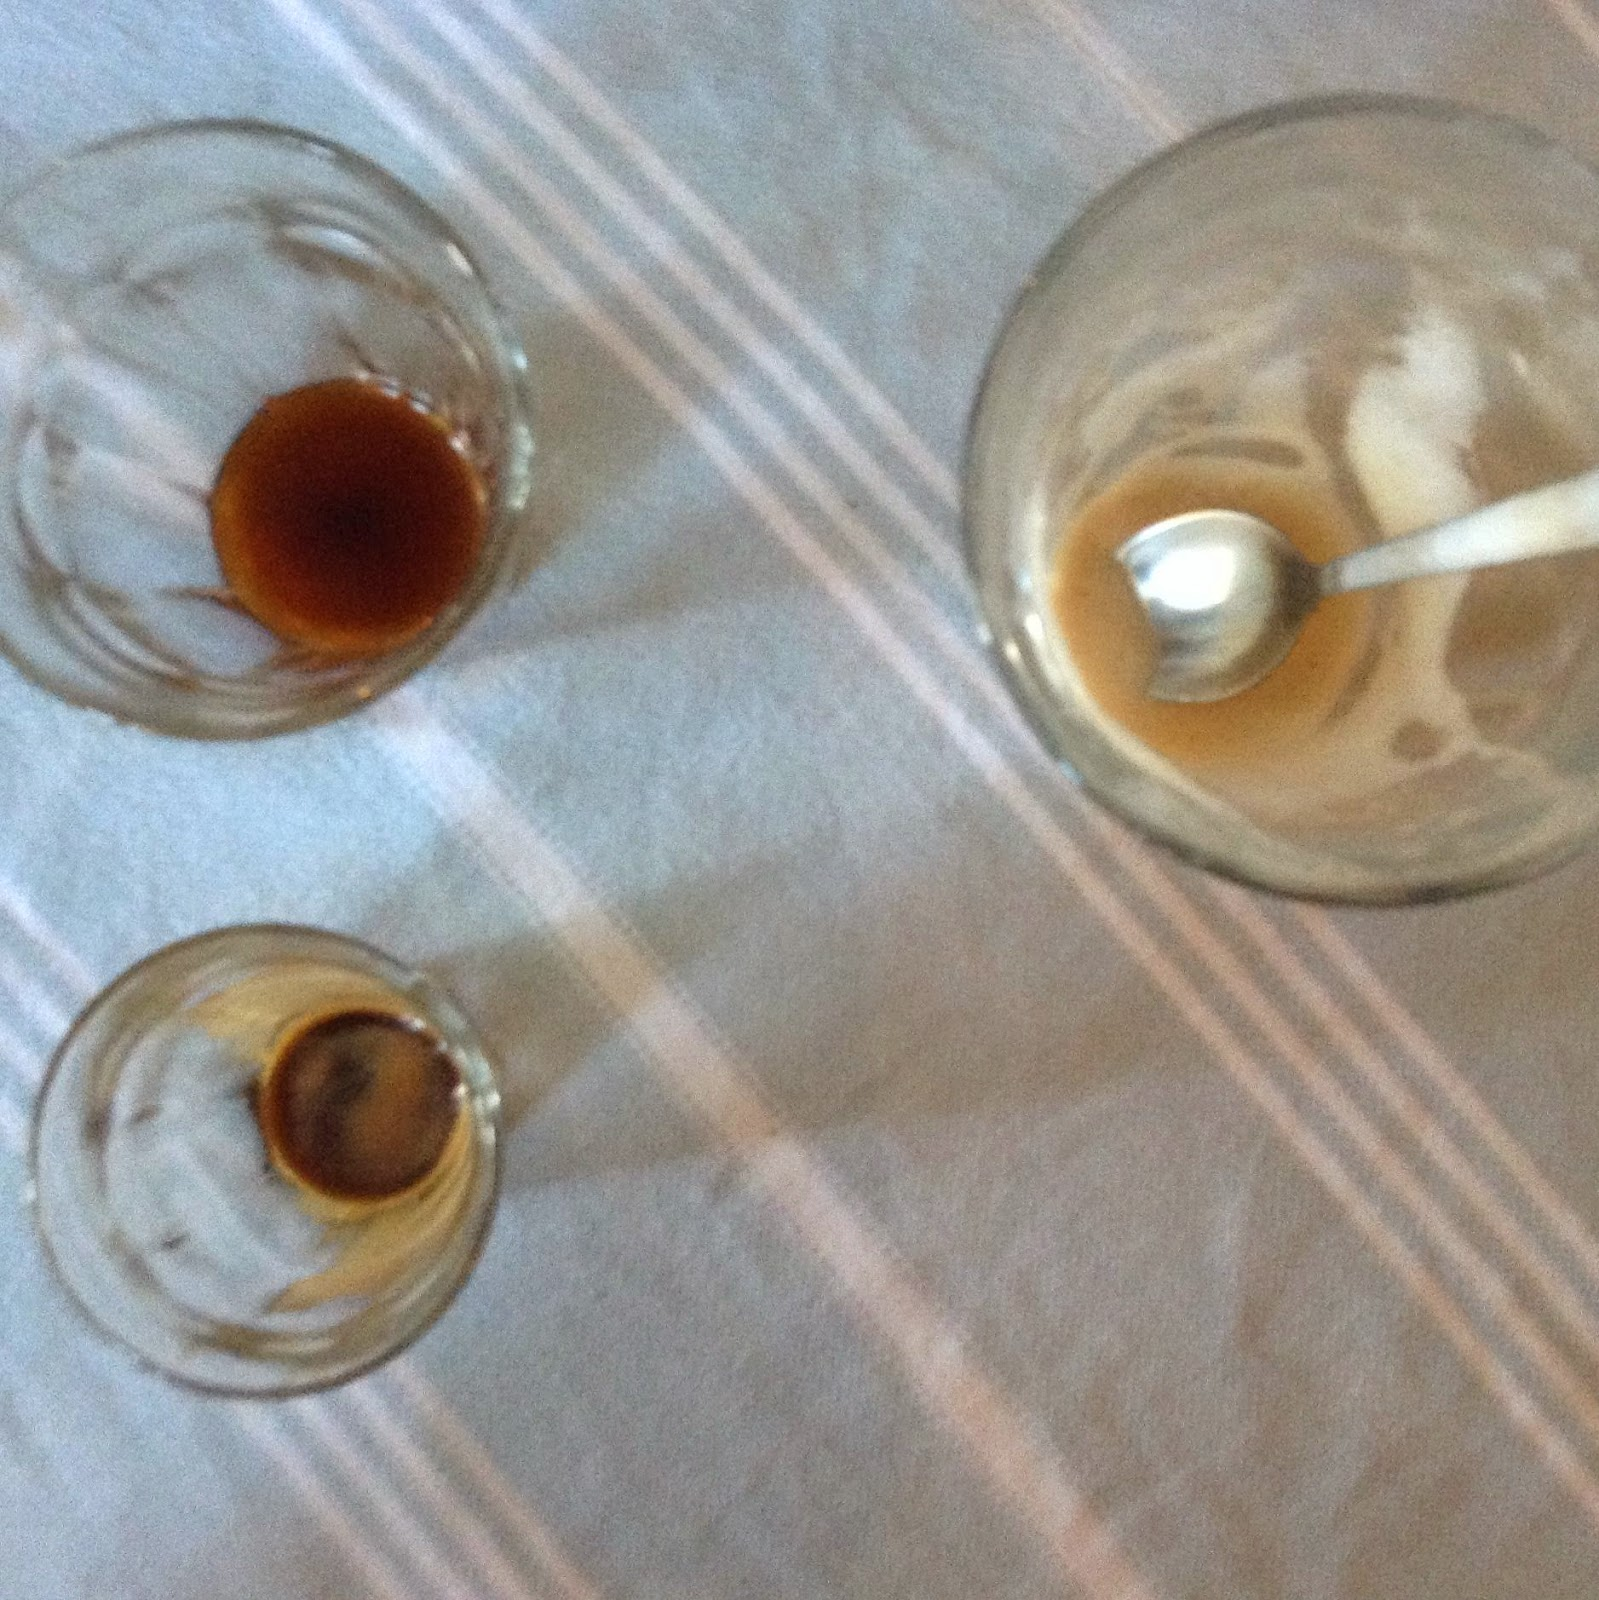 Empty coffee glasses